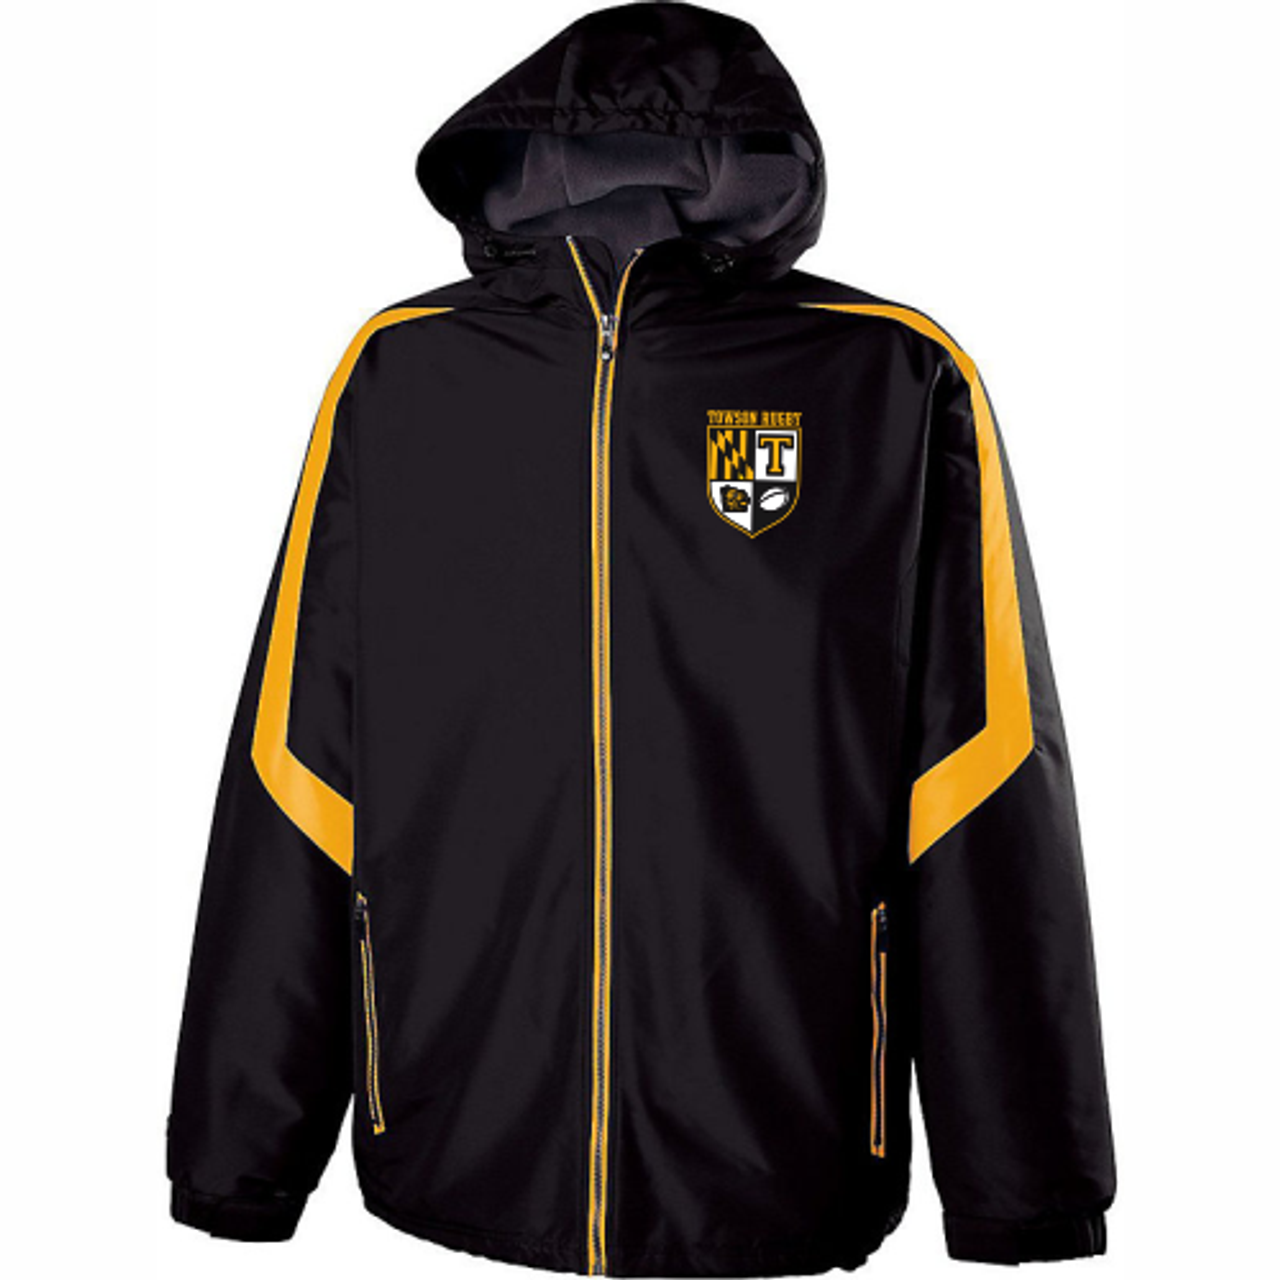 Towson Rugby Supporter Jacket